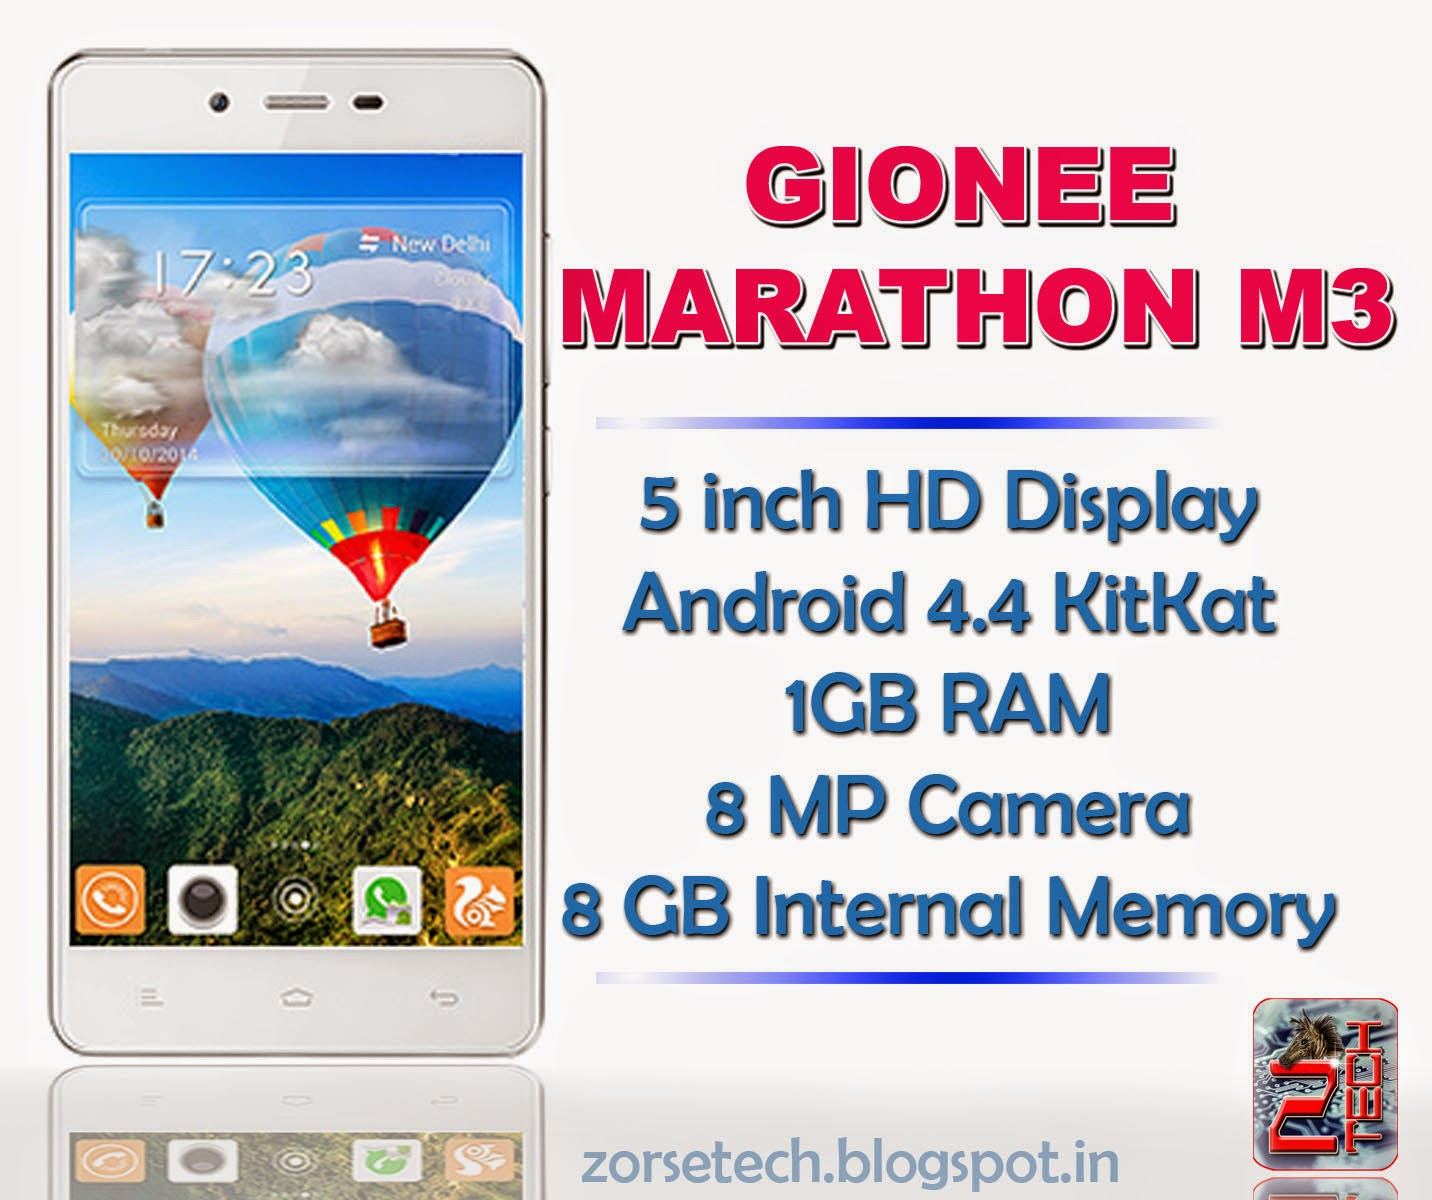 Gionee Marathon M3 with 5 inch Hd display, 1 GB RAM, 8 mp camera, 8 GB internal memory etc...